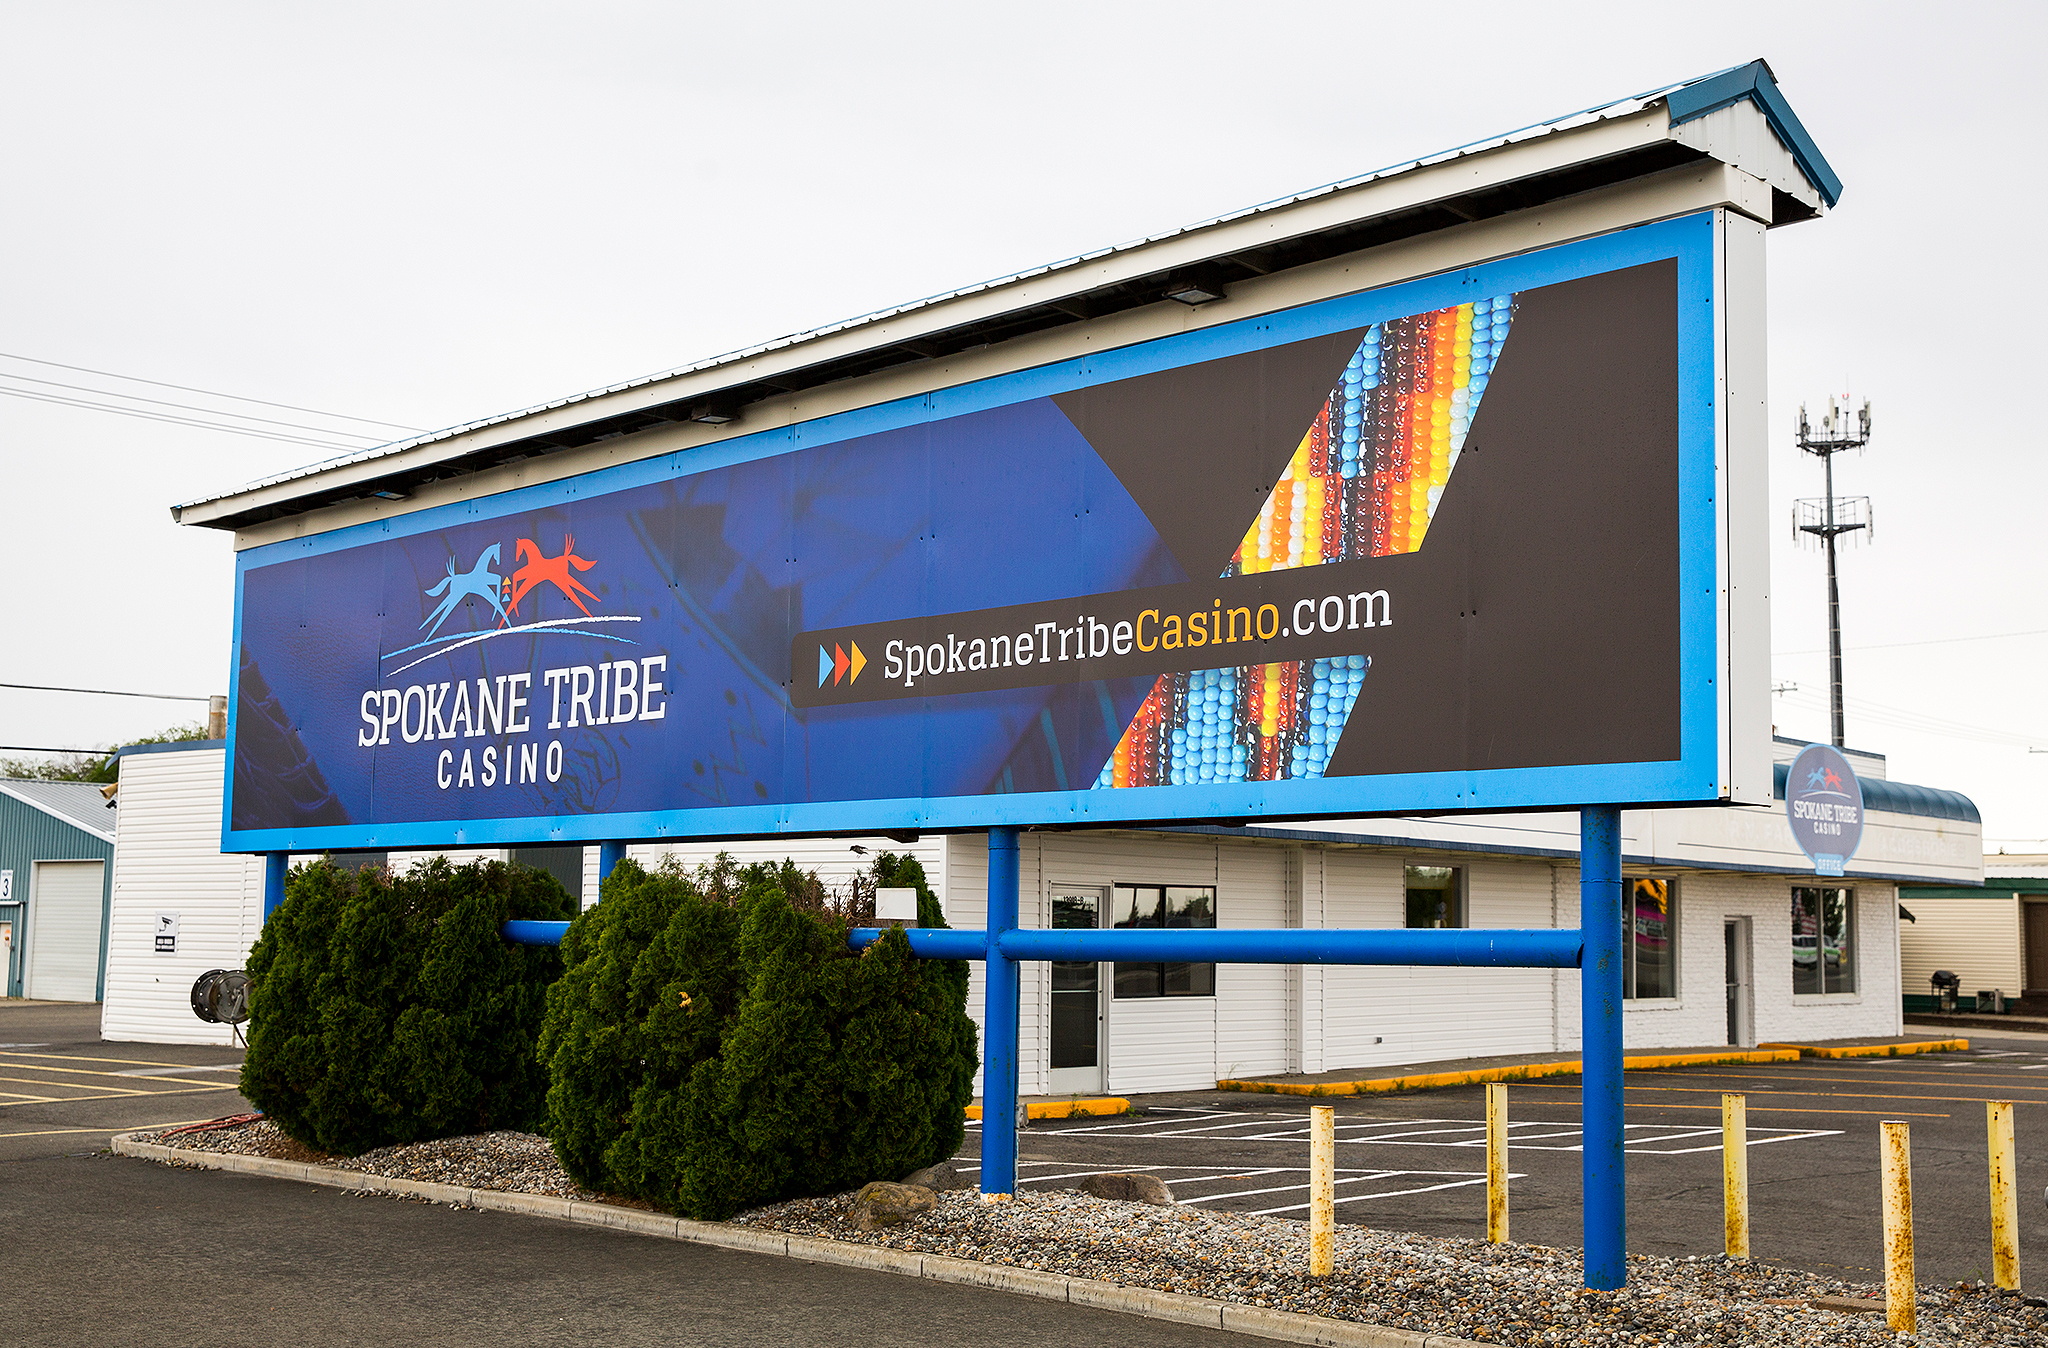 Temporary Fabric Wallpaper Outdoor Office Signs For Spokane Tribe Casino Signs For